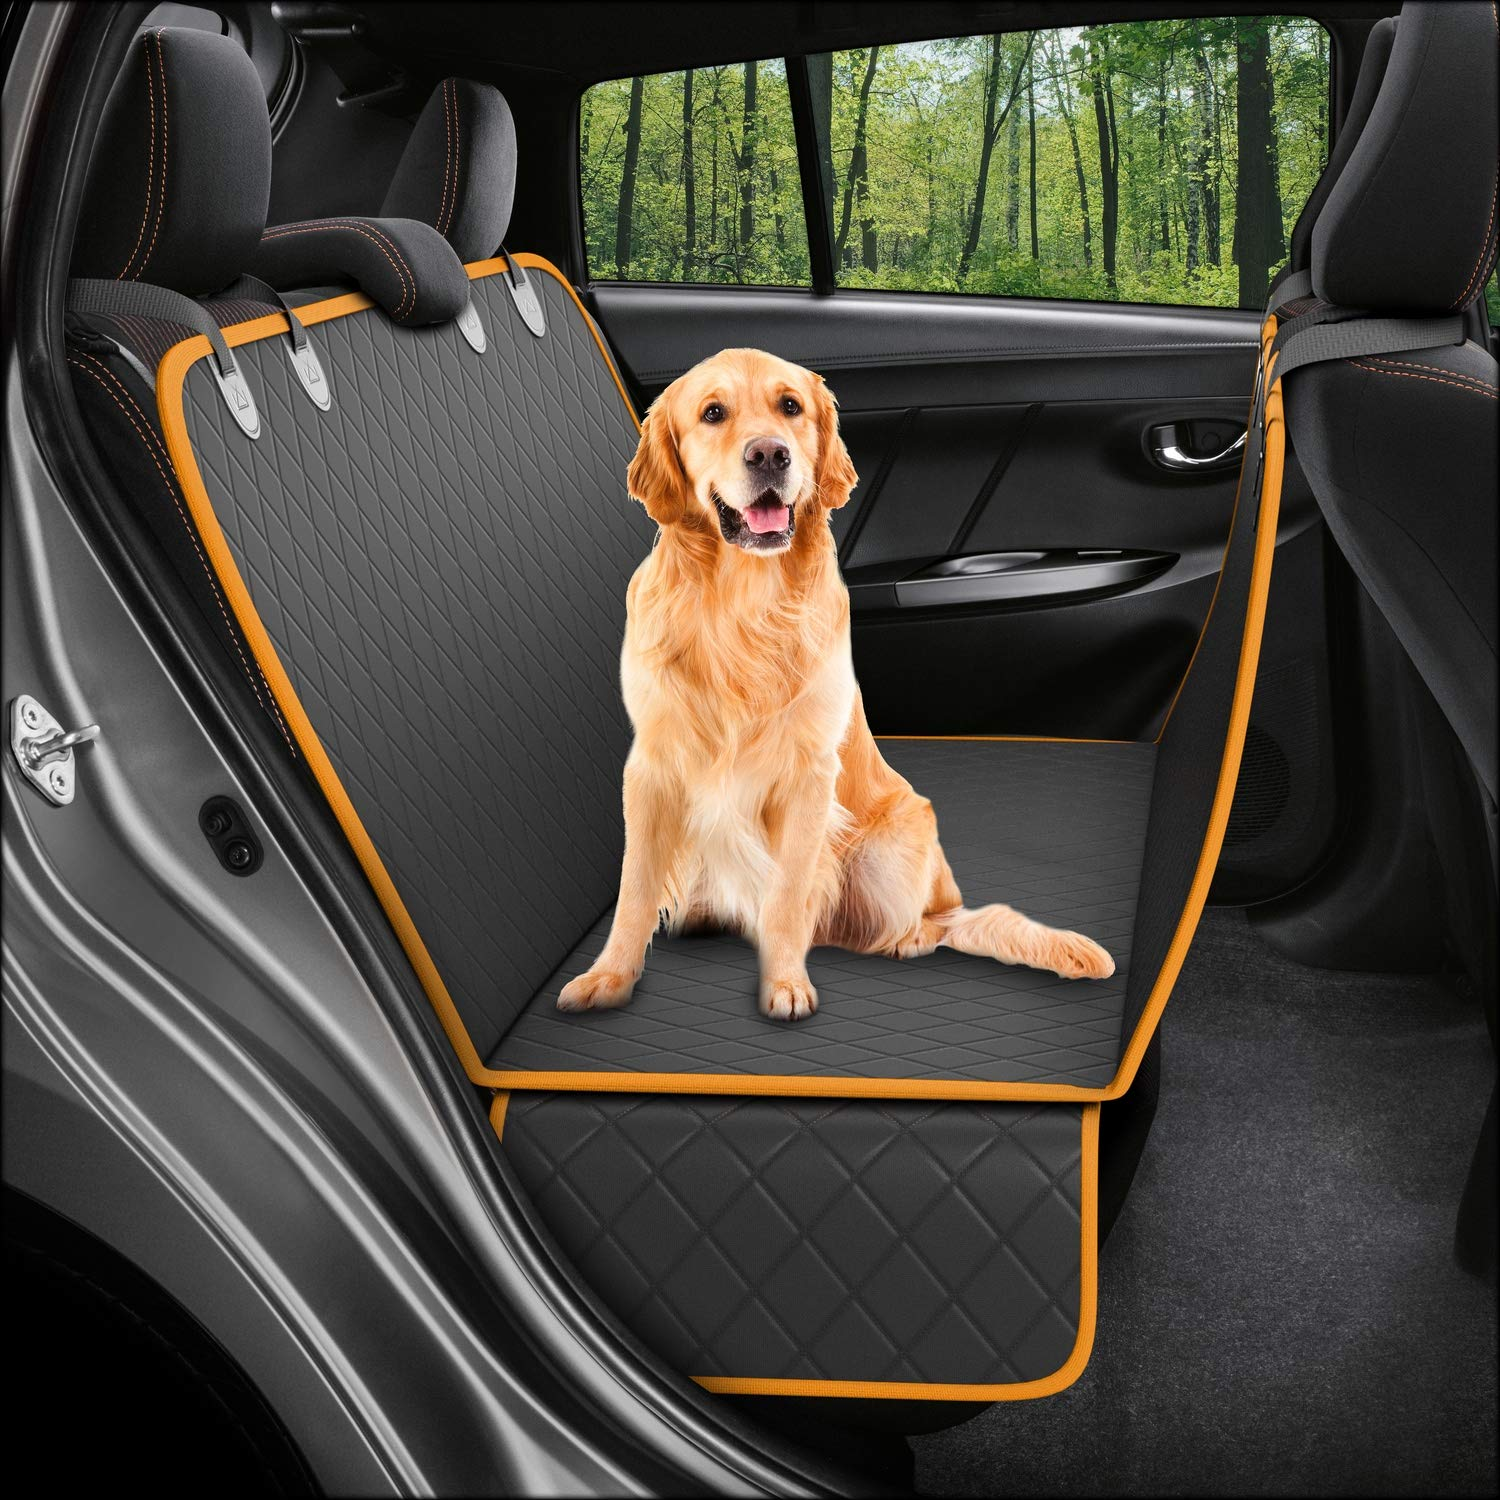 Backseat Dog Hammock >> Dog Back Seat Cover Protector Waterproof Scratchproof Nonslip Hammock For Dogs Backseat Protection Against Dirt And Pet Fur Durable Pets Seat Covers